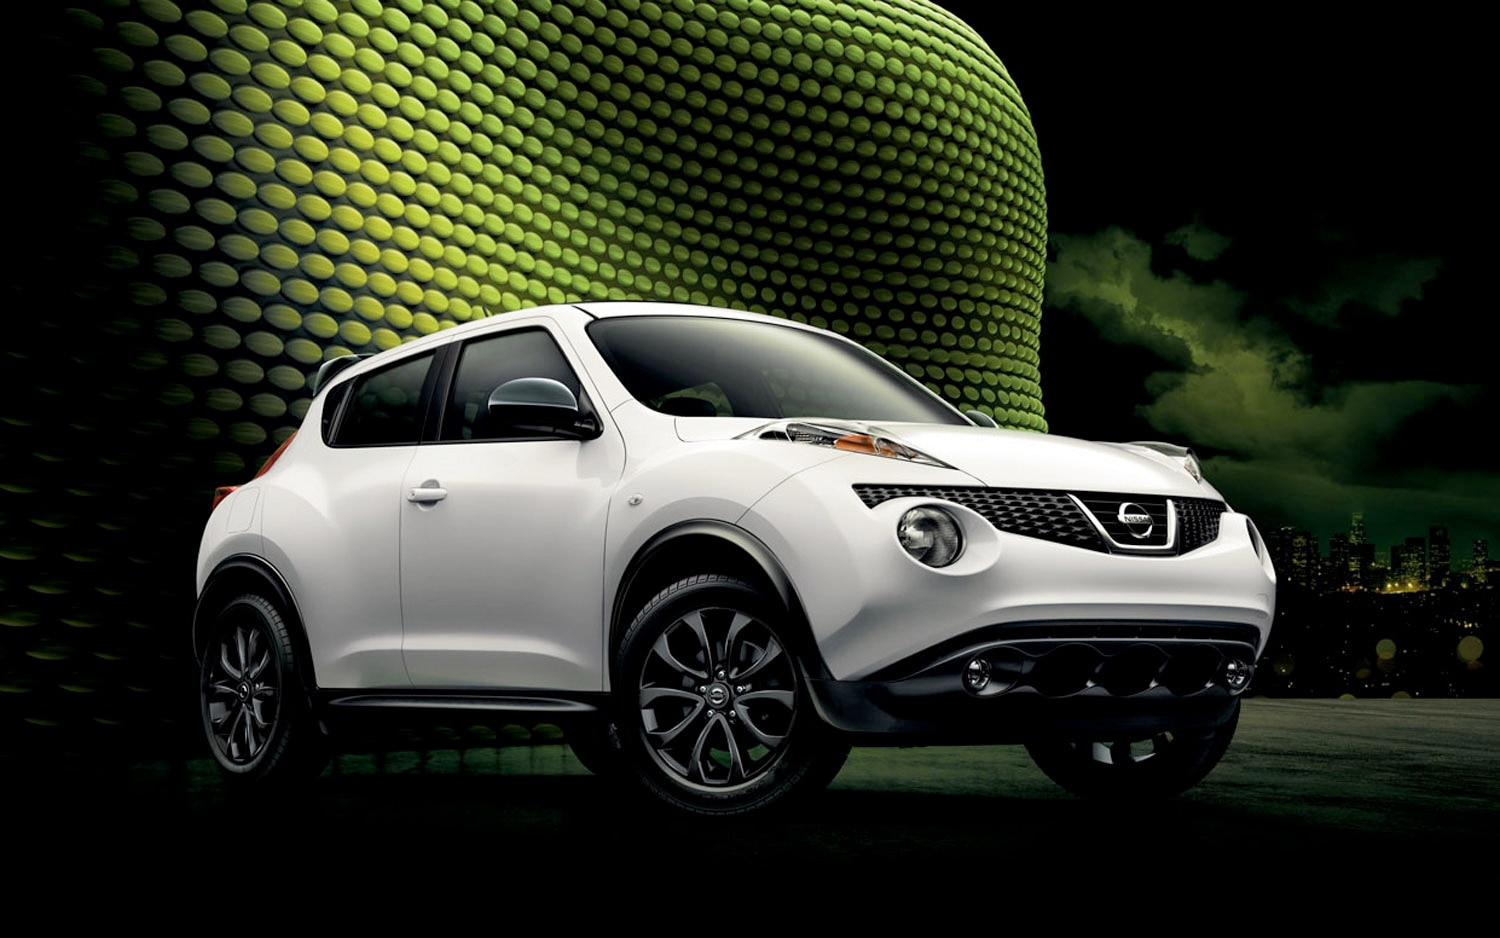 2013 Nissan Juke Midnight Edition White Front Three Quarter1